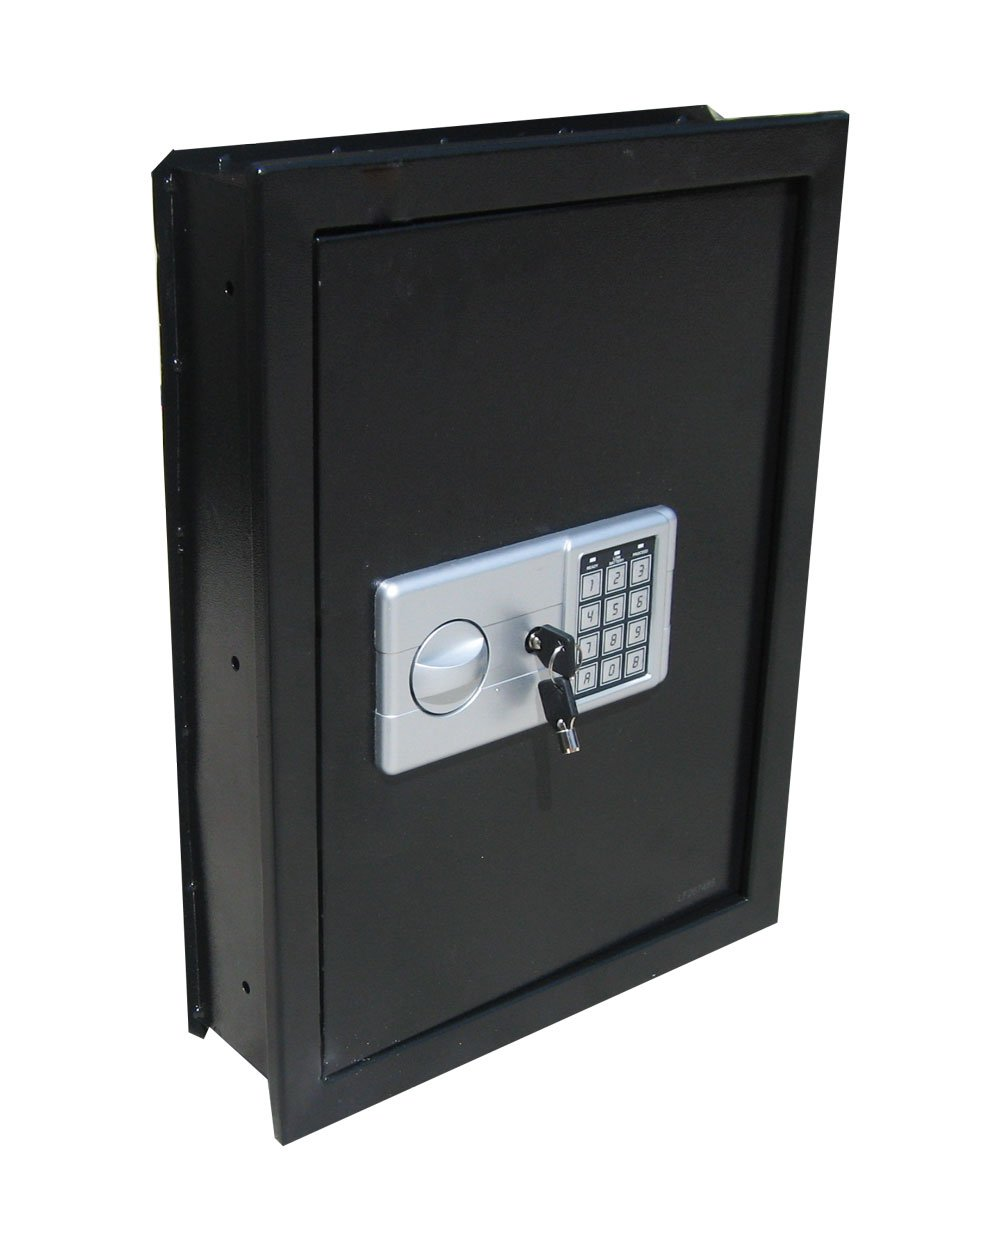 Digital Electronic Flat Recessed Wall Hidden Safe Security Box Jewelry Gun Cash (Black) by able